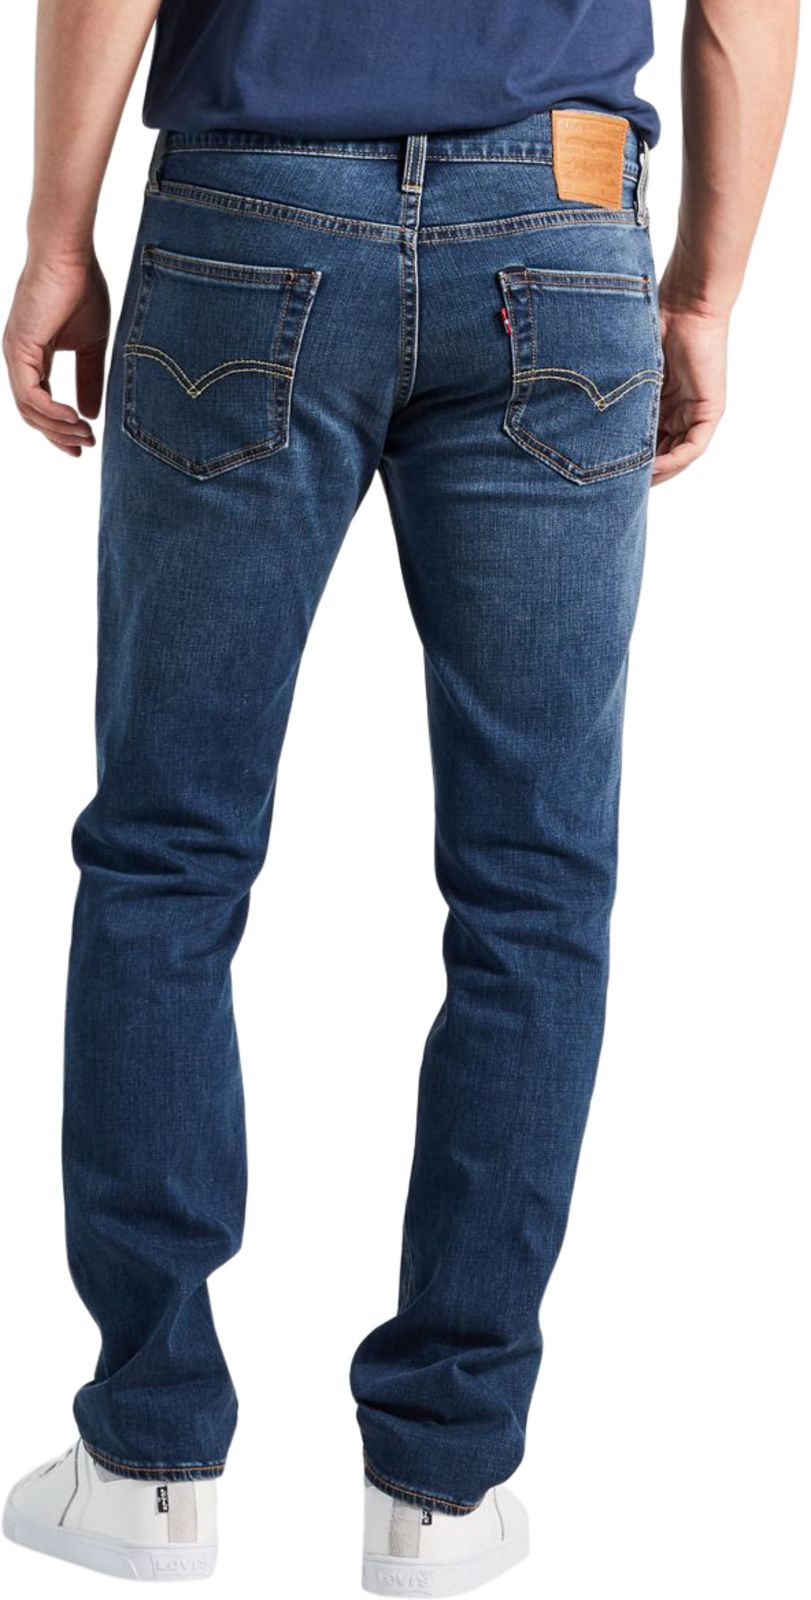 Levi's 511 Slim Fit Denim Jeans Blue